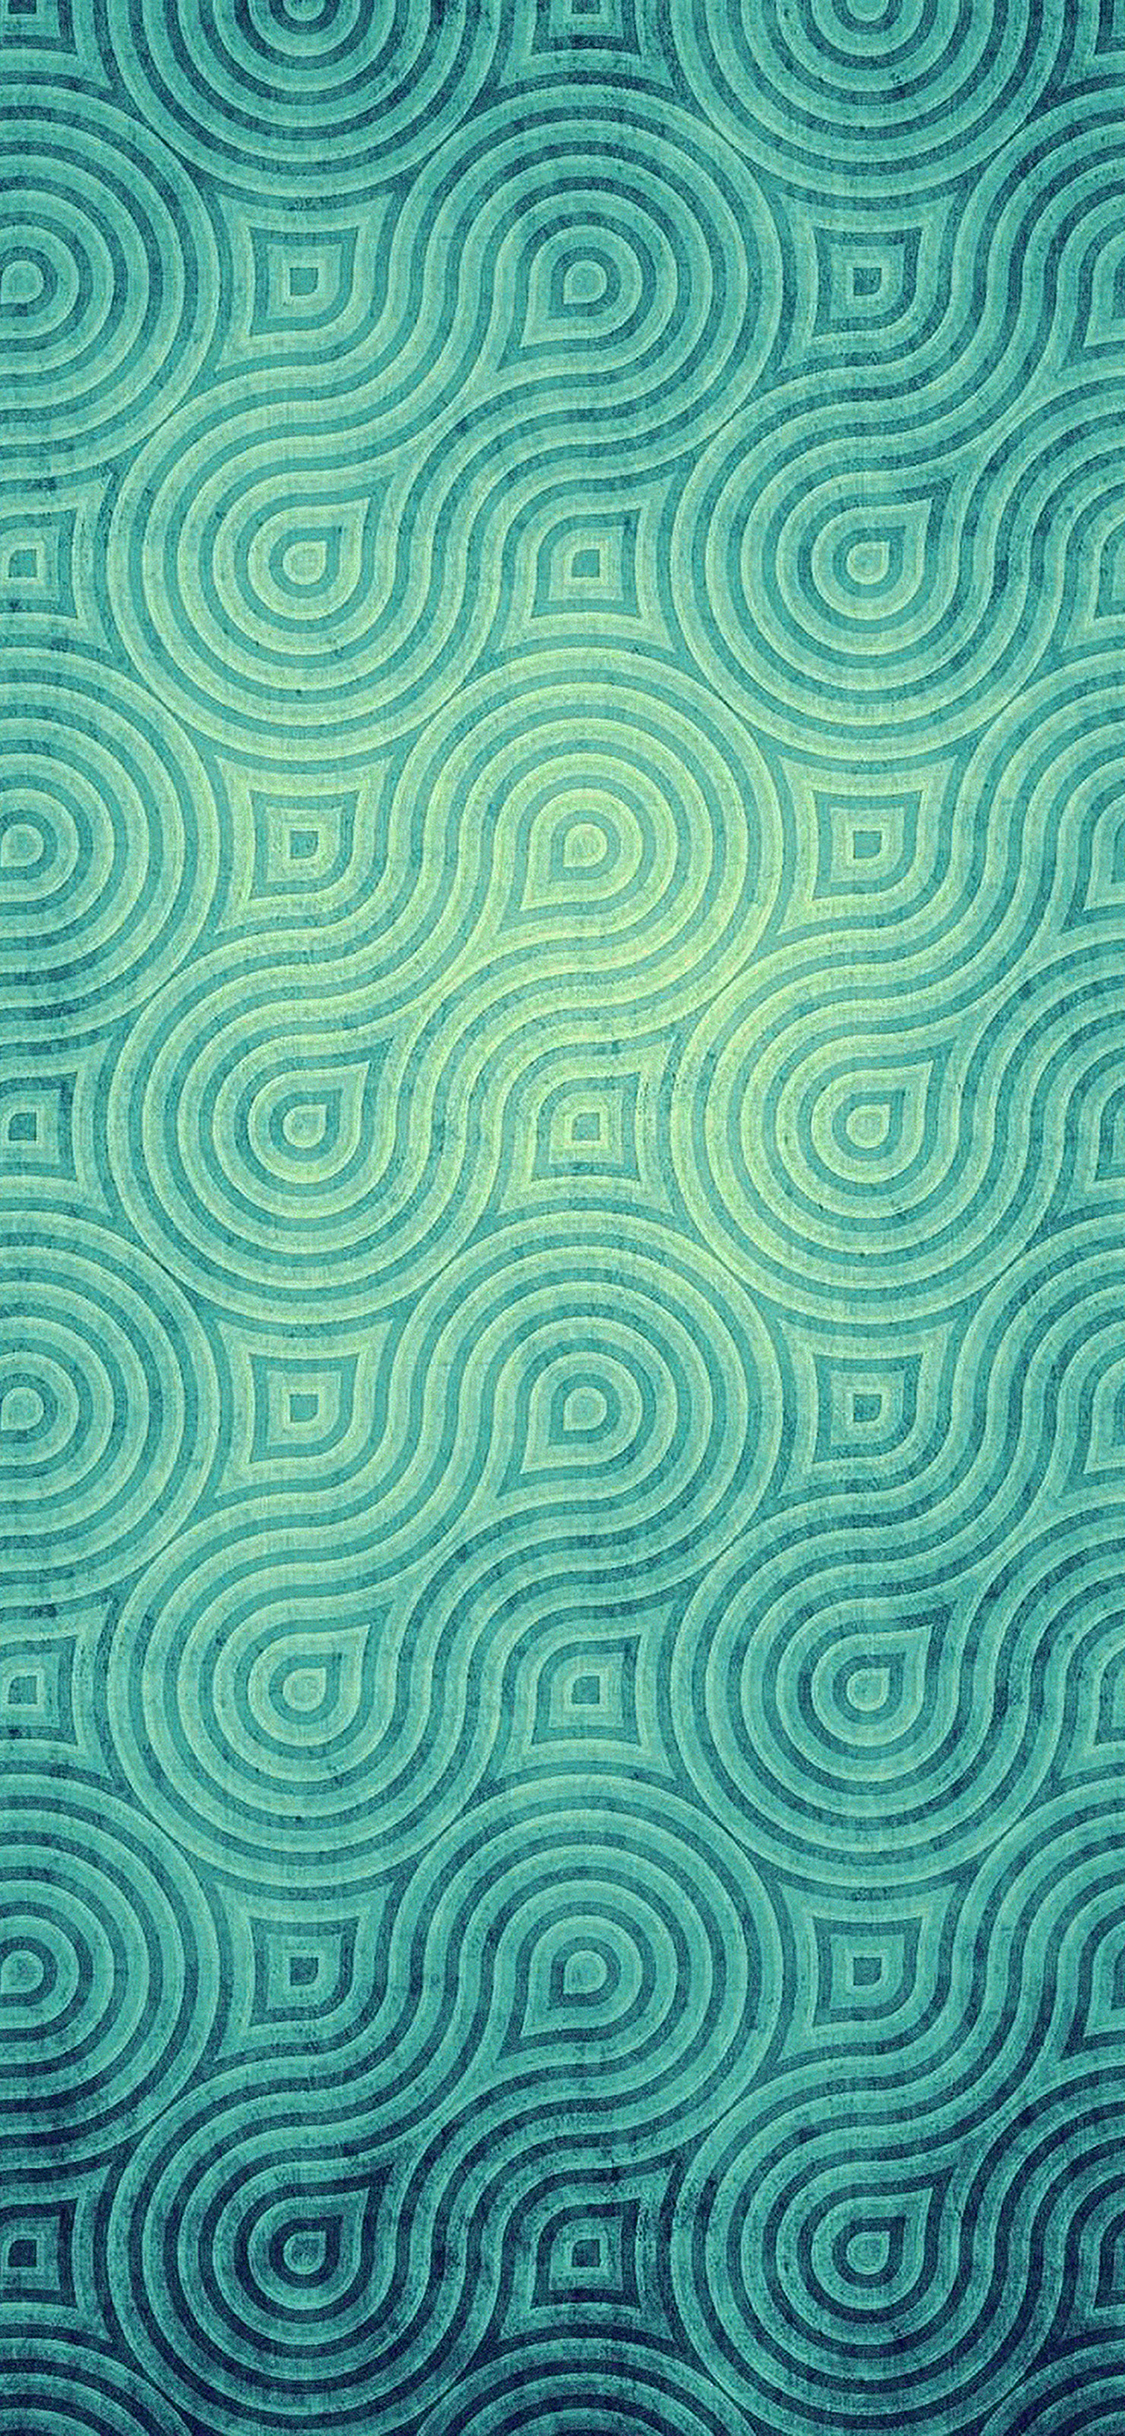 iPhoneXpapers.com-Apple-iPhone-wallpaper-vb59-wallpaper-blue-curve-texture-pattern